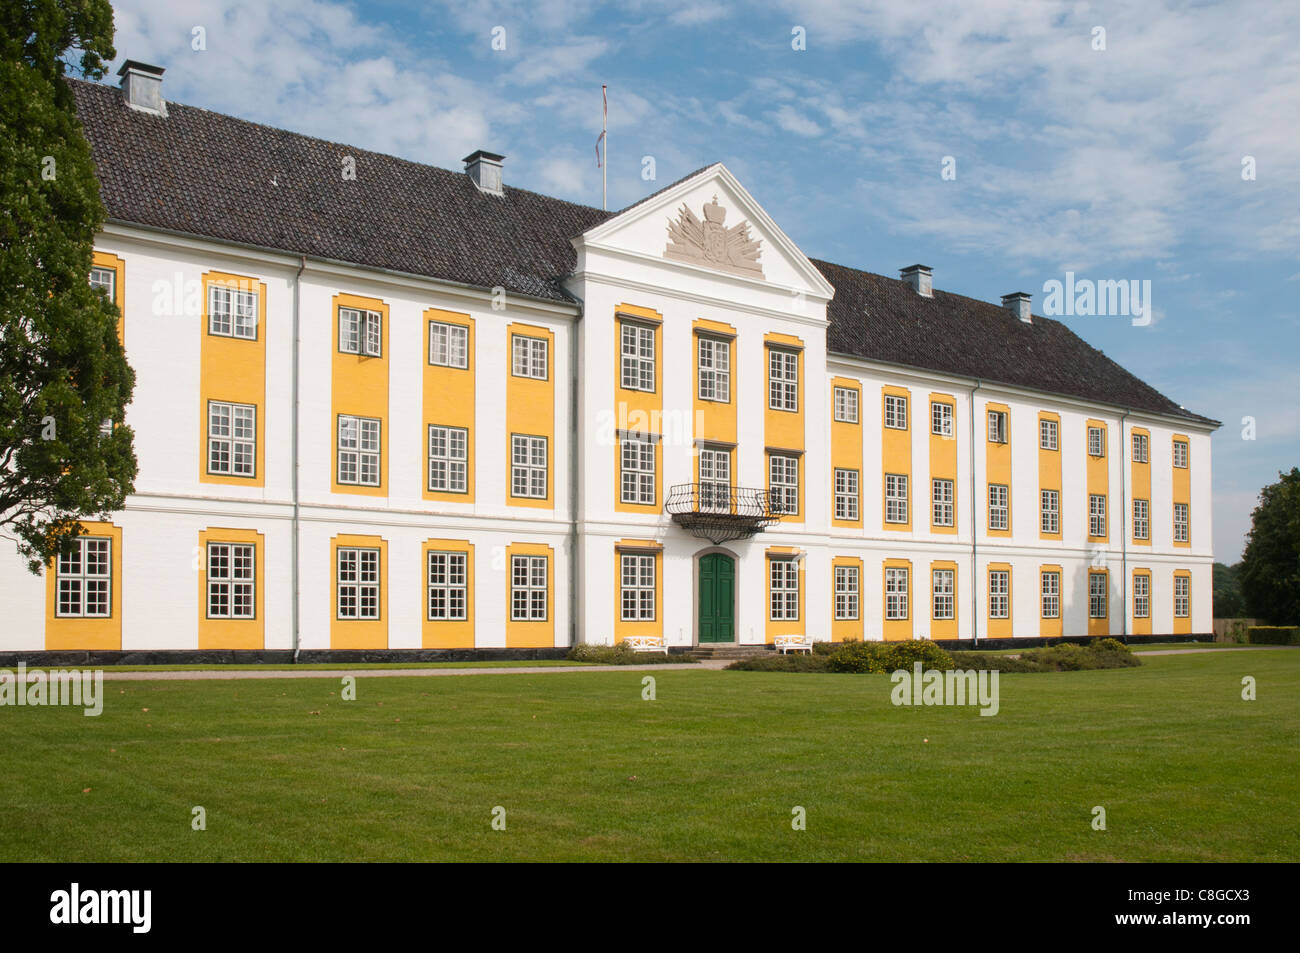 a*site:cheezepizza.blogspot.com ls-island Augustenborg Palace, <b>Als Island</b>, South Denmark, Europe Stock Photo